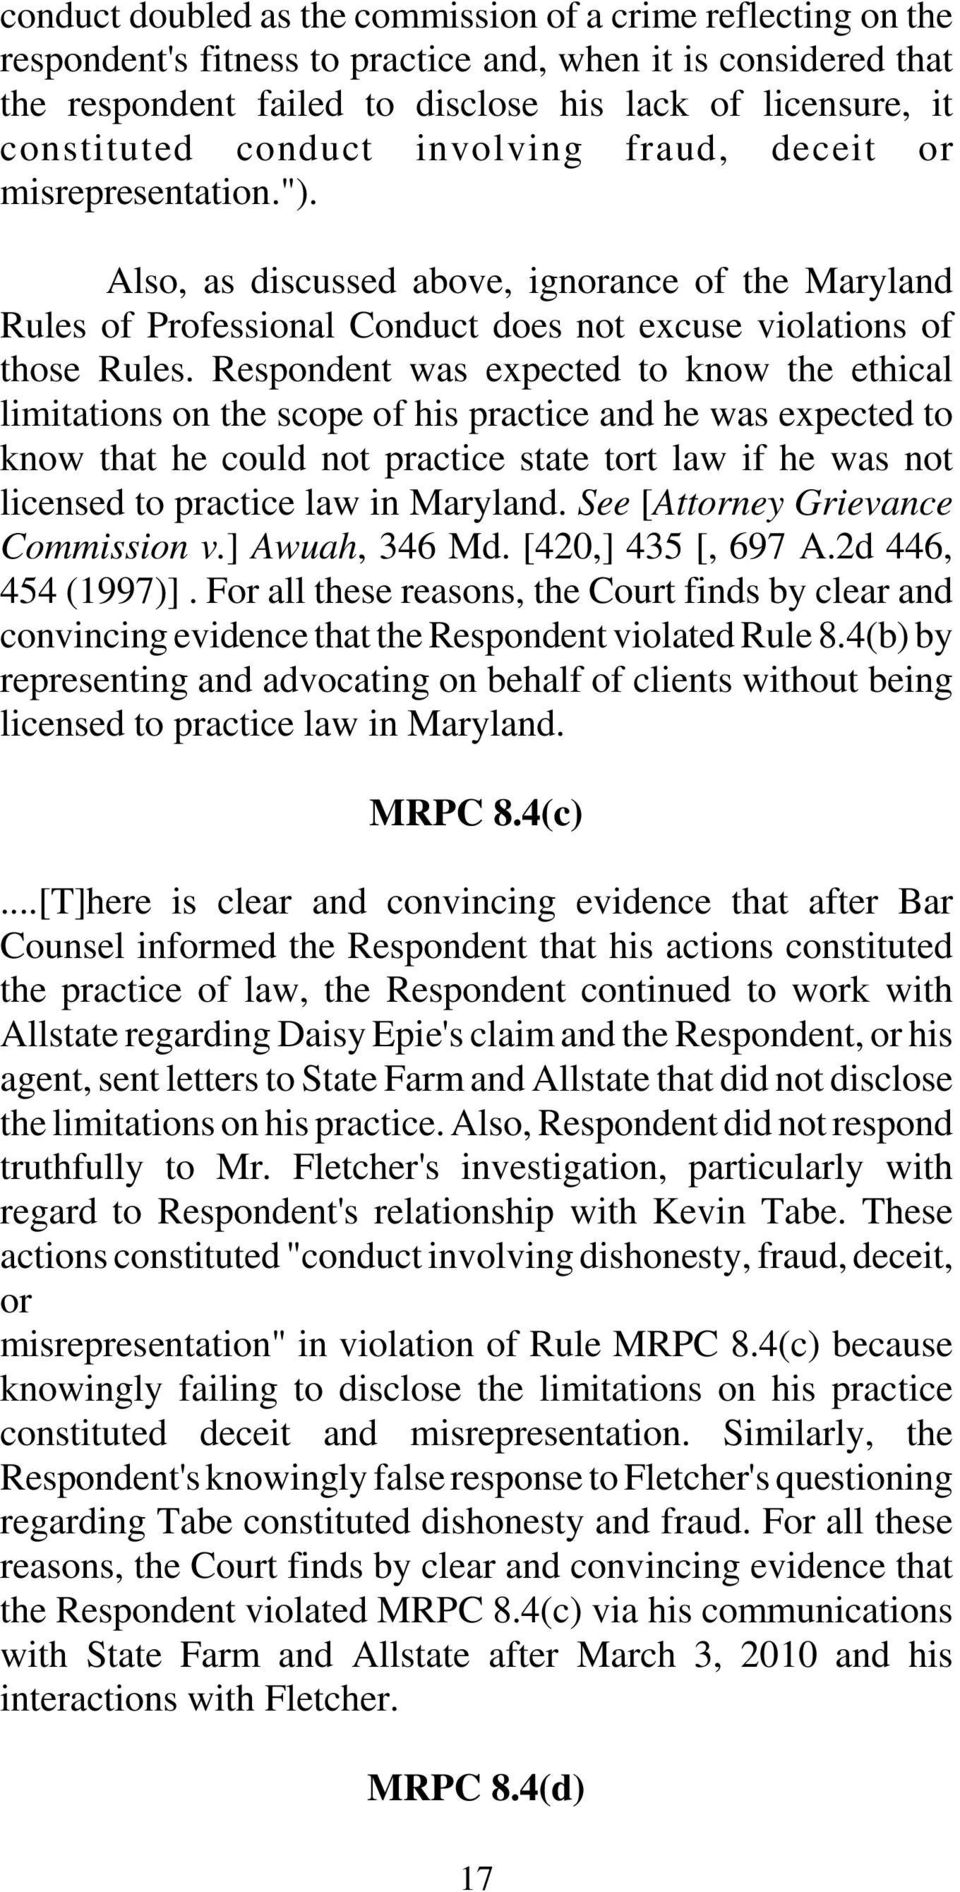 Respondent was expected to know the ethical limitations on the scope of his practice and he was expected to know that he could not practice state tort law if he was not licensed to practice law in